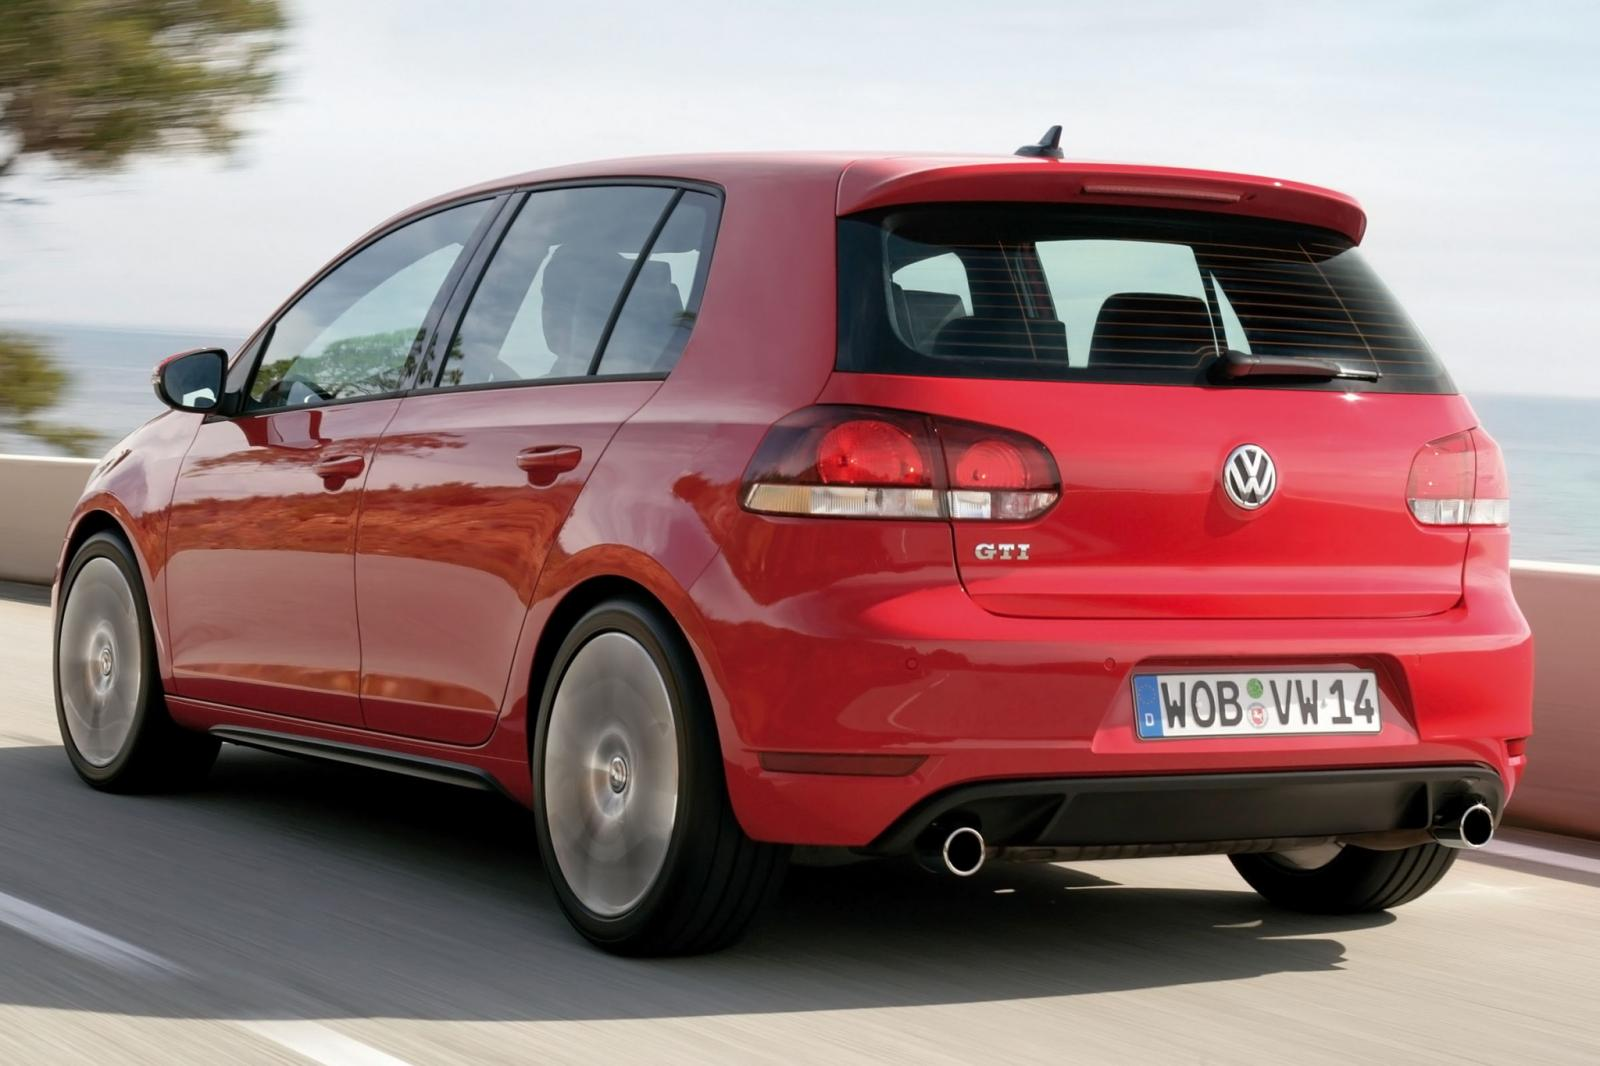 2014 volkswagen gti information and photos zombiedrive. Black Bedroom Furniture Sets. Home Design Ideas